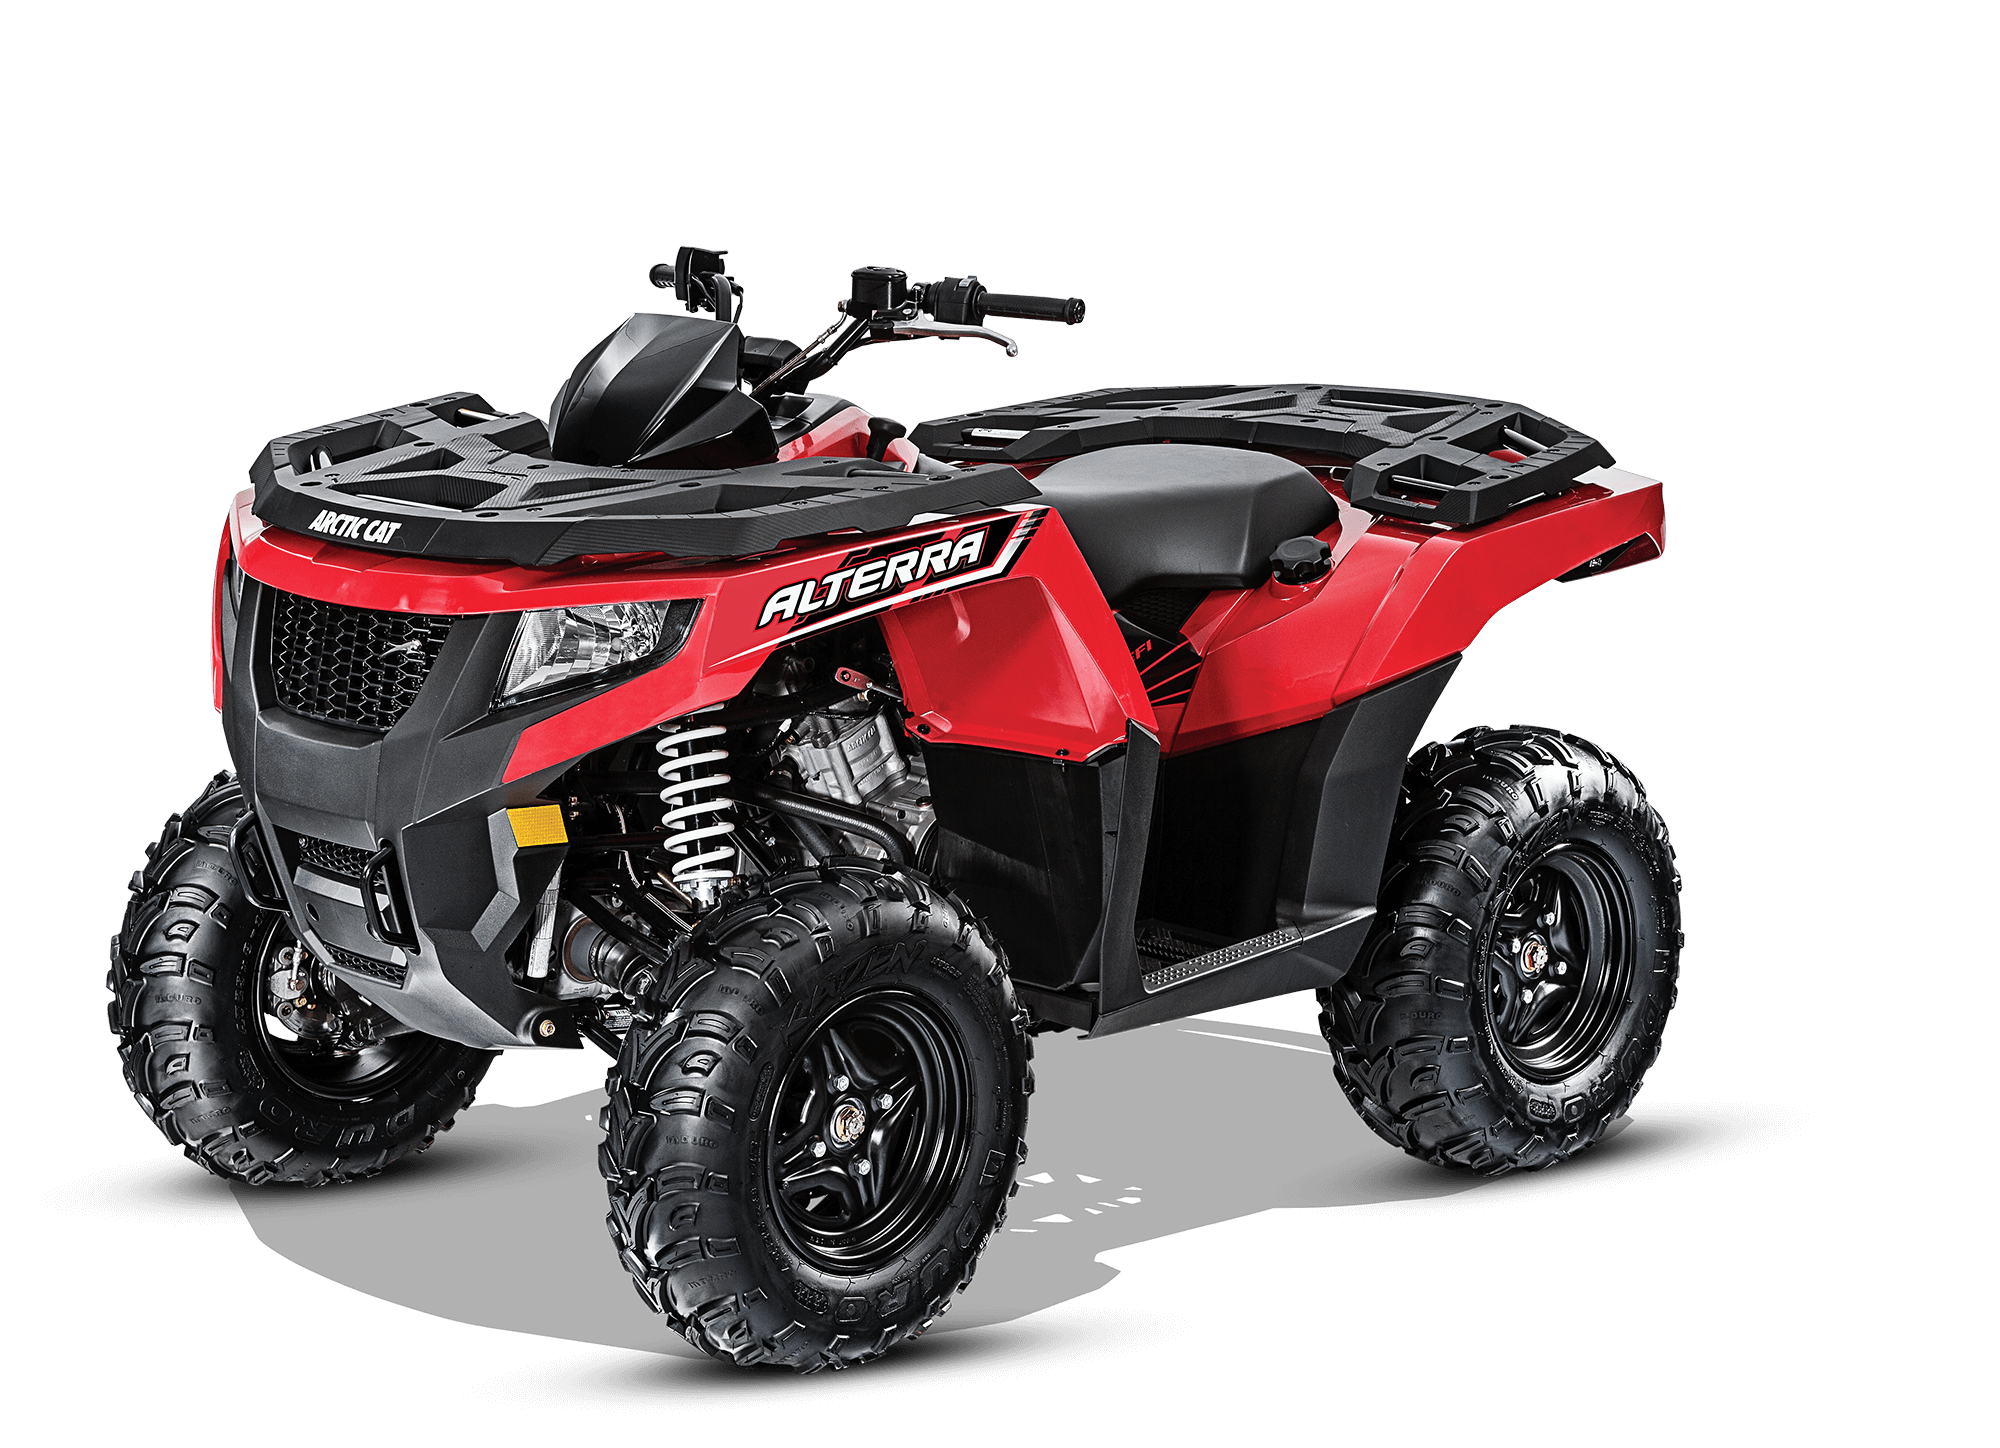 Arctic Cat Alterra 550 with a 545 CC, SOHC, 4Stroke, 4